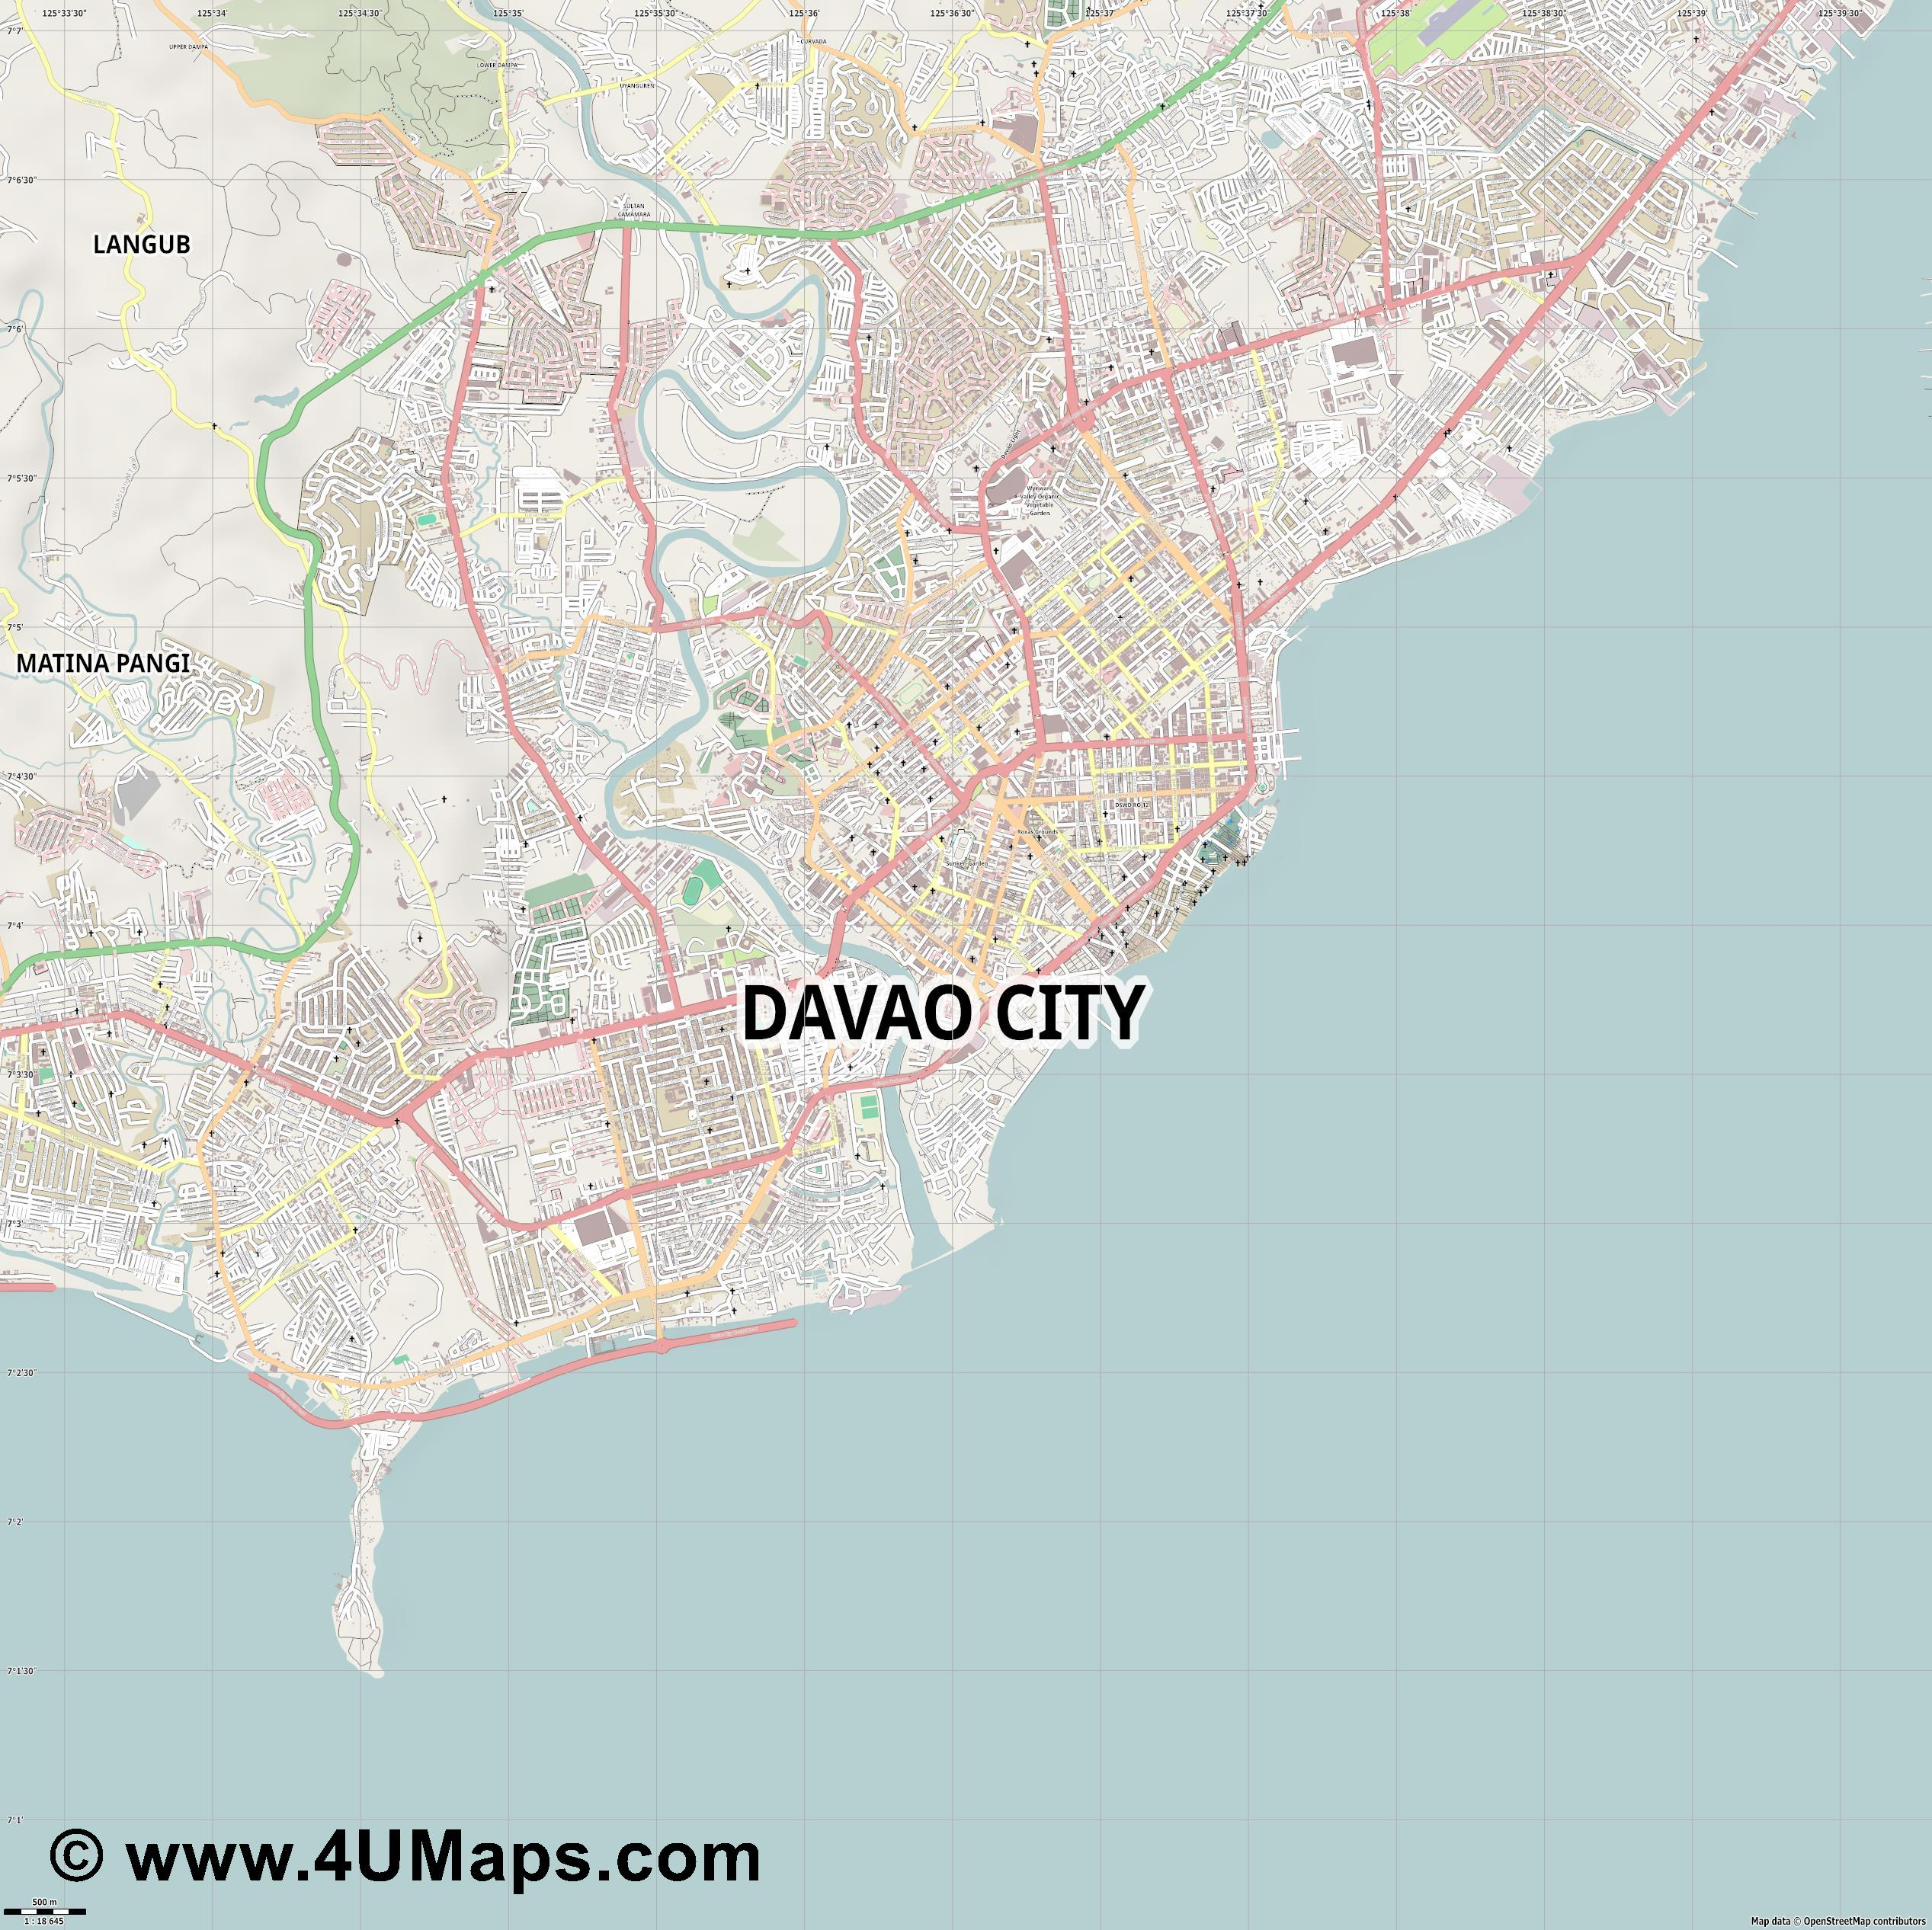 PDF, Svg Scalable Vector City Map Davao City Davao City Map on